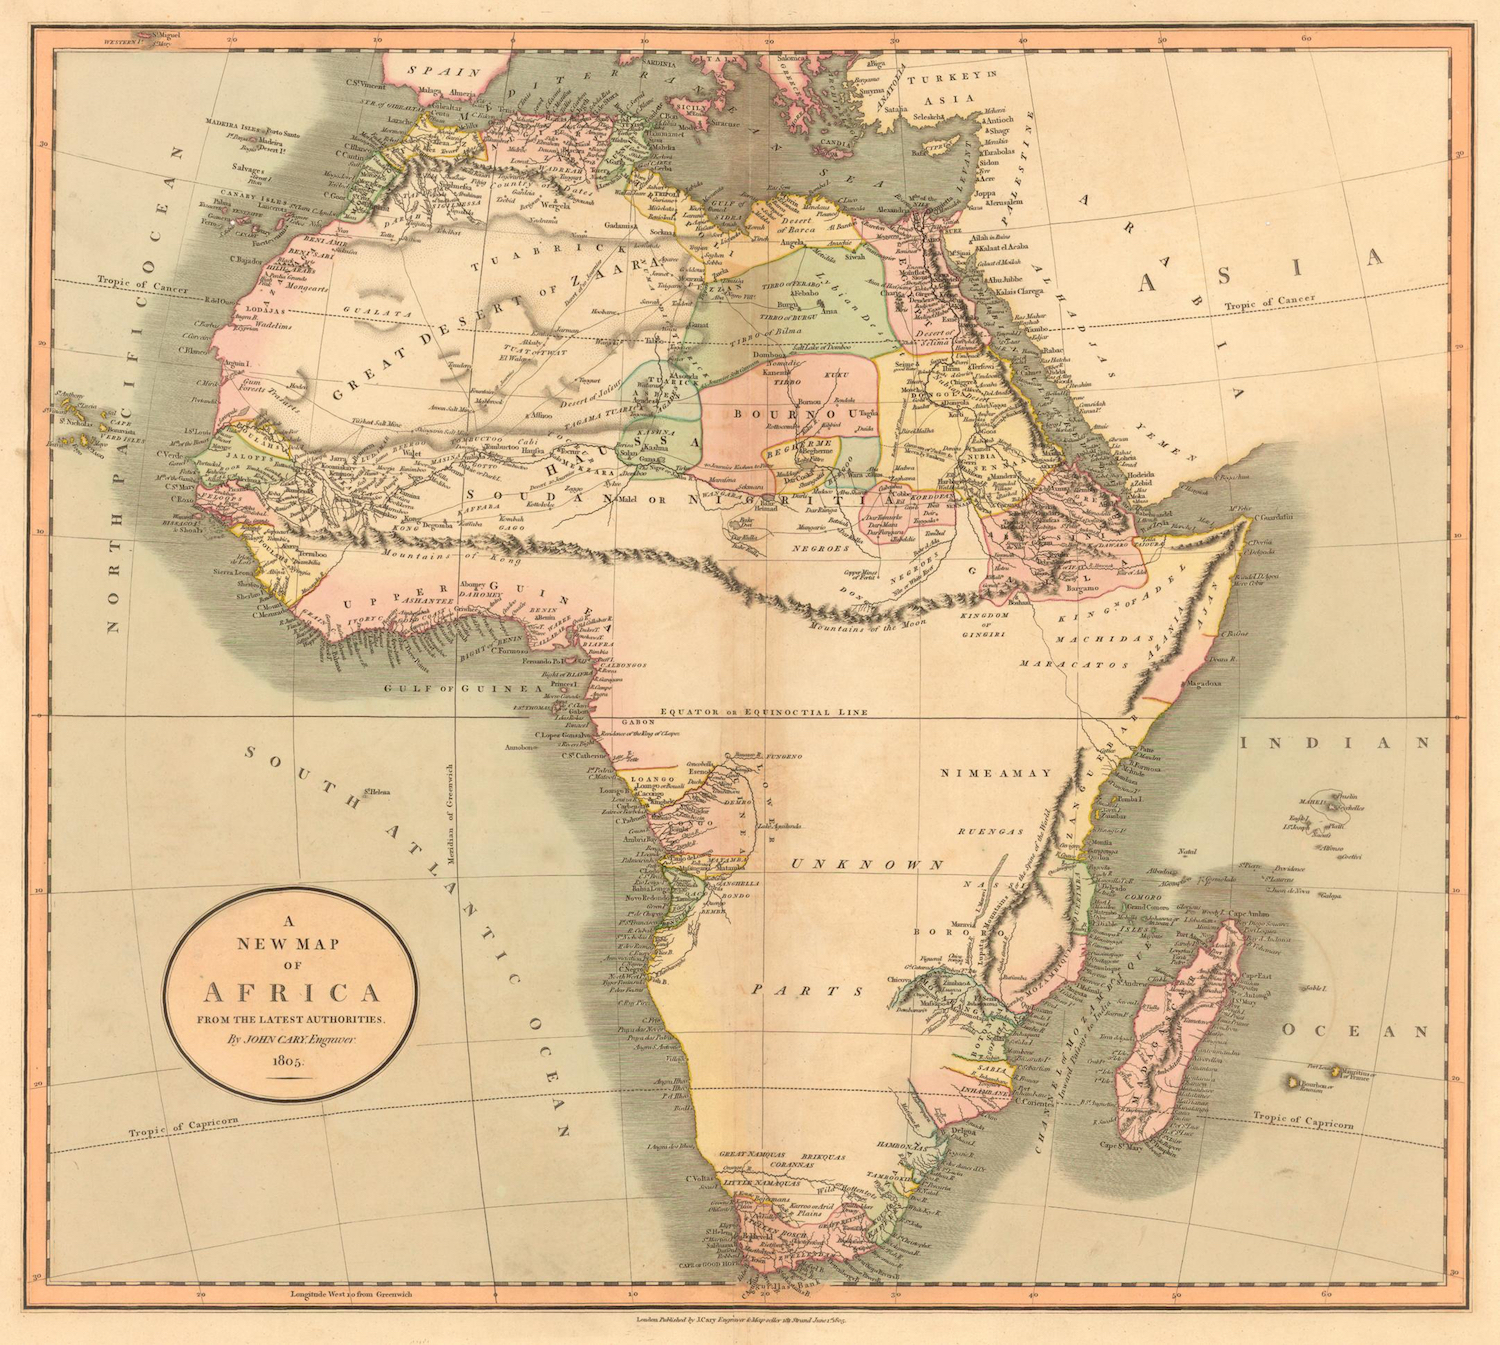 """Even late in the game most of Africa was unknown to the west. In this presentation of the continent published by John Cary in 1805 the contours of the coastline are well established as are select inland areas. Note however the imaginative line of mountains that march latitudinally from Africa's eastern horn to its southwestern bulge. In the west, this range is labeled the """"Mountains of Kong."""" In the east, they become Ptolemy's """"Mountains of the Moon."""" South of this range are """"Unknown Parts."""" Our source for this image is    here."""